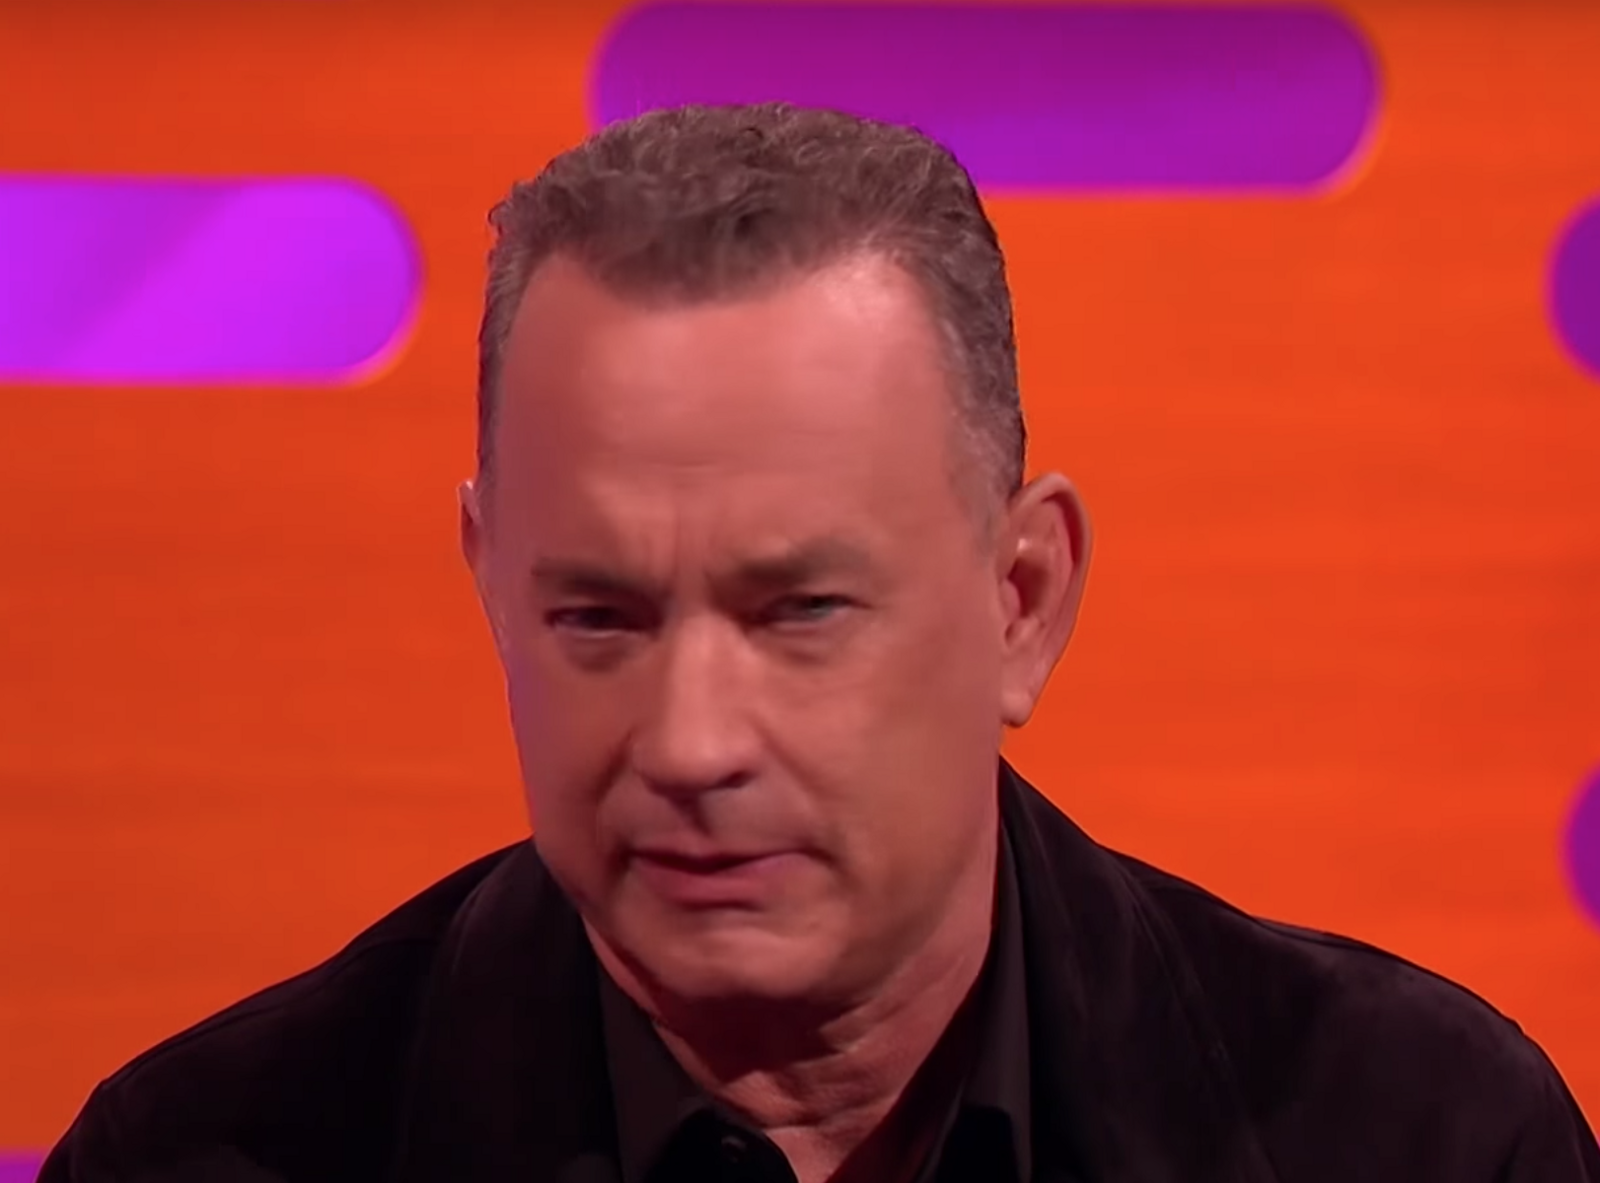 Body Language Analysis 4185 Tom Hanks Embarrassment And